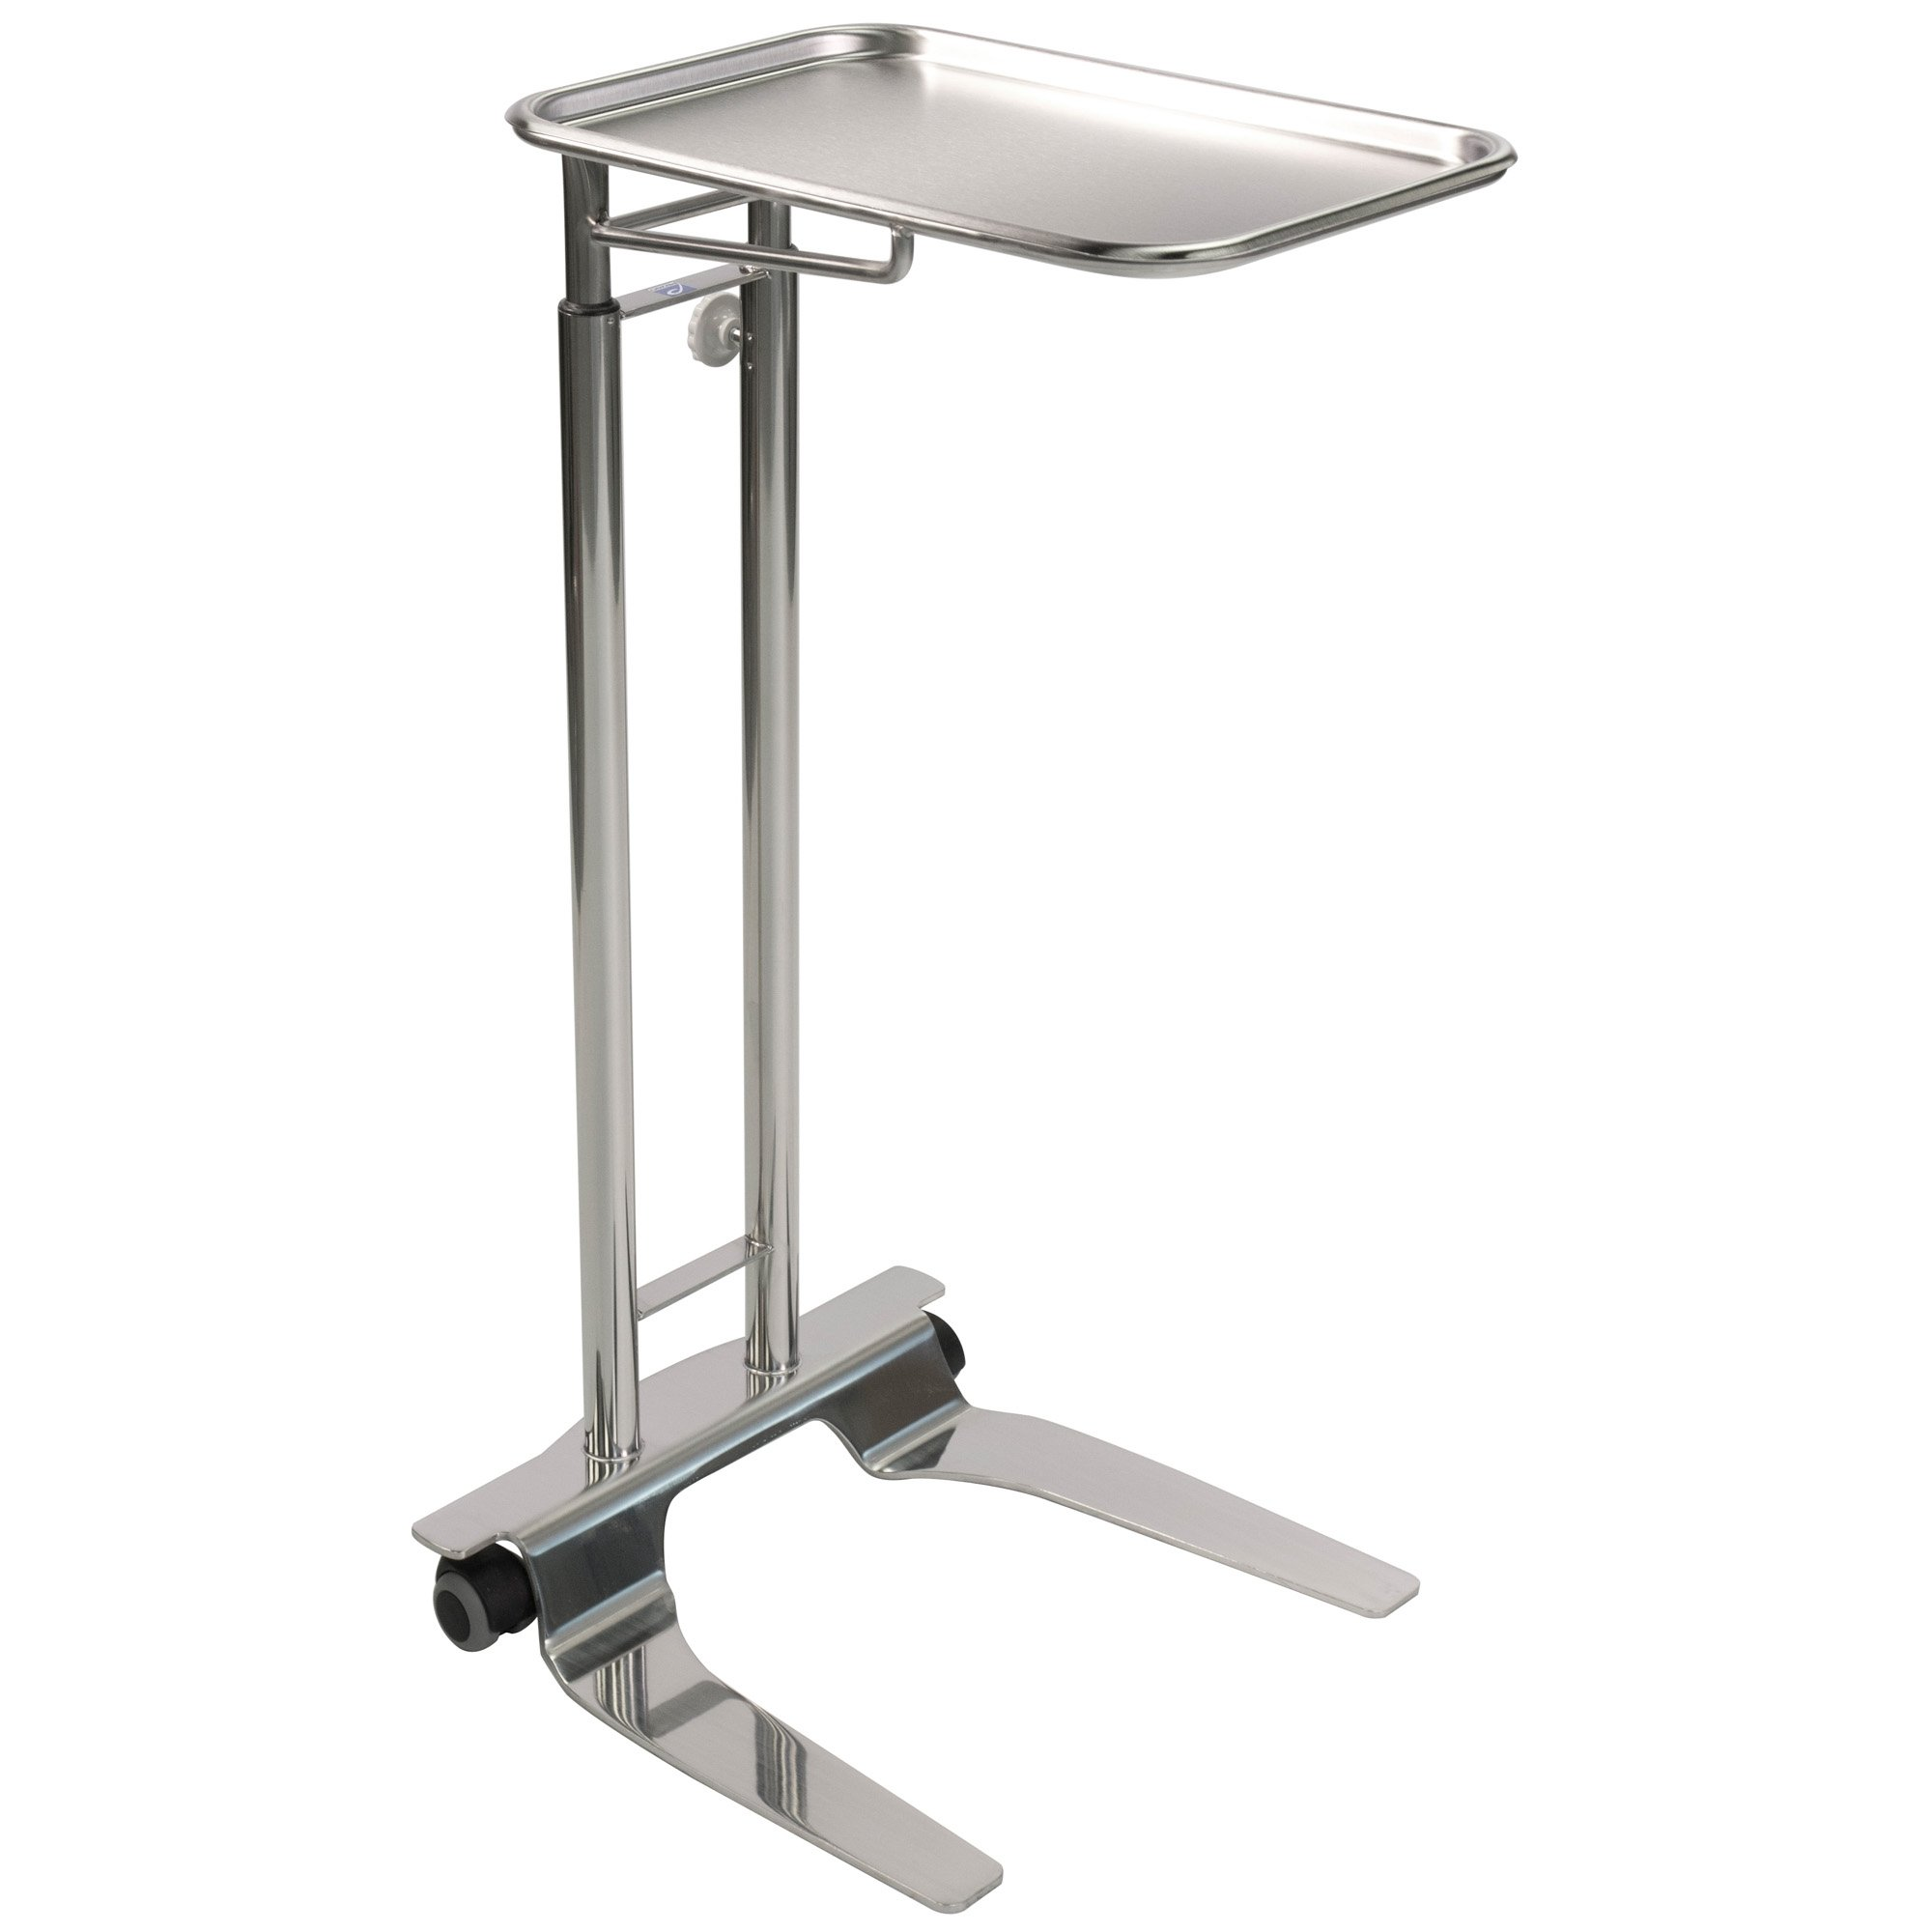 Pedigo SS Hand Operated Mayo Stand With 12 5/8